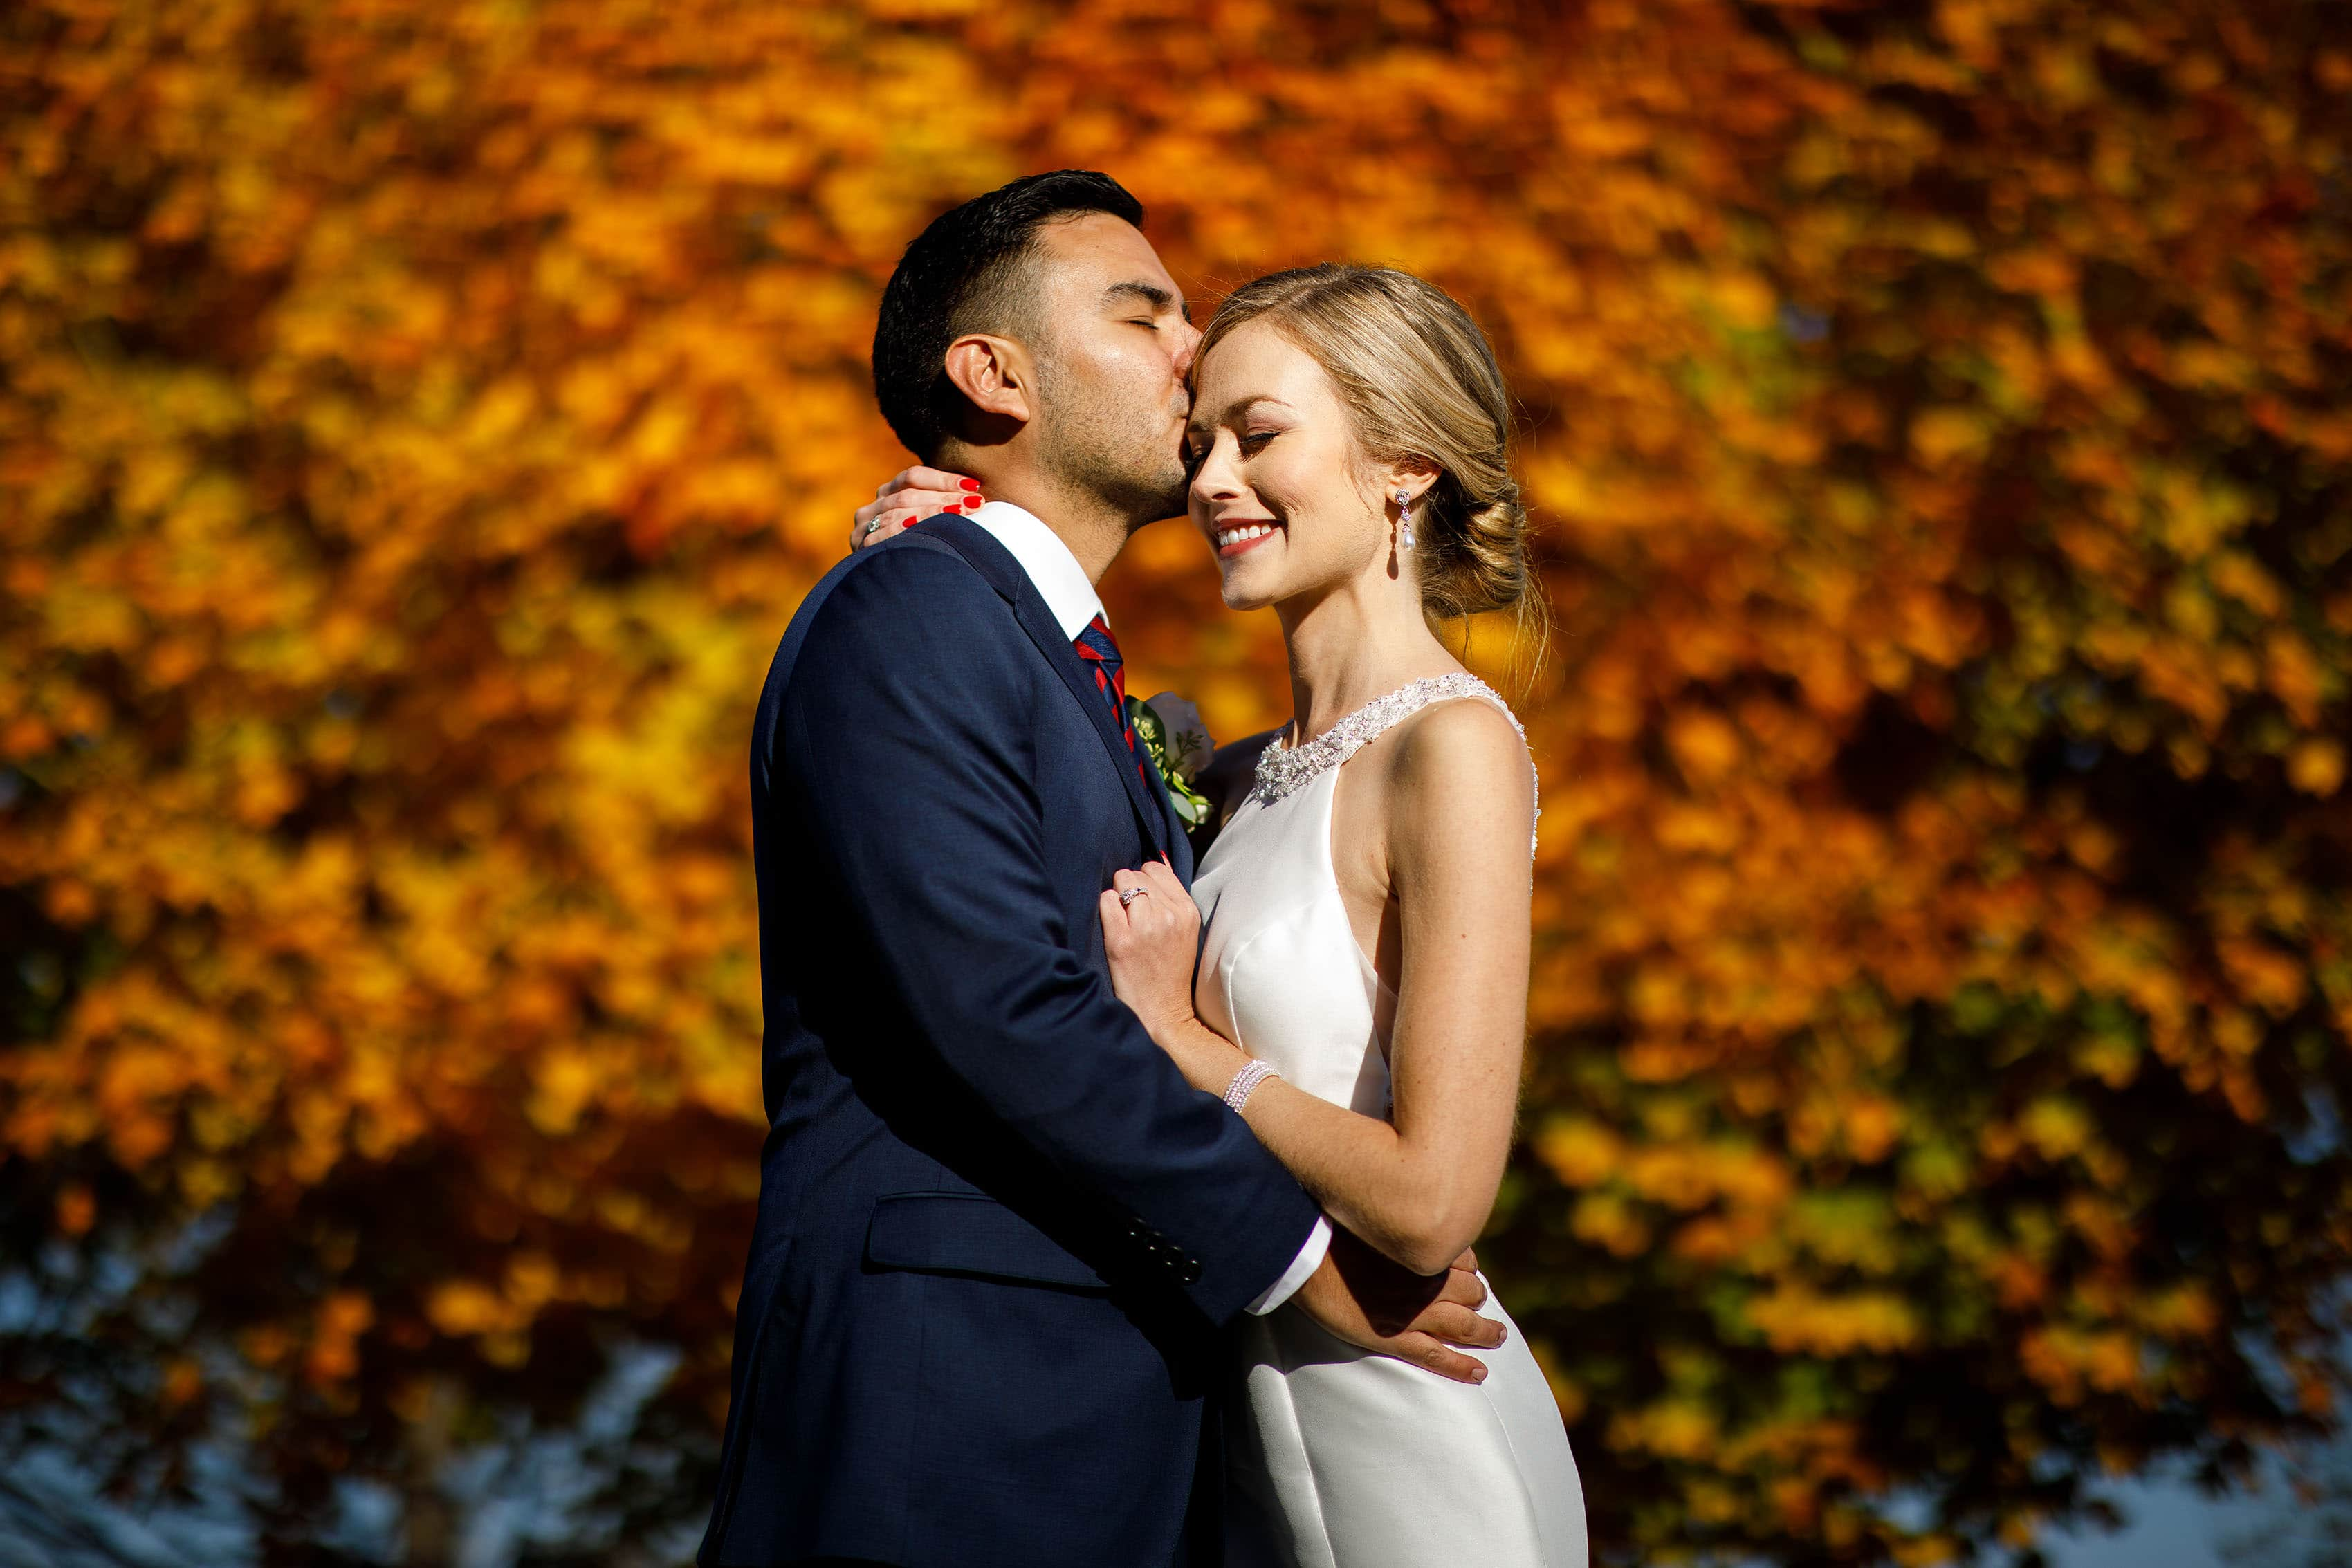 Richie kisses Ashley on their wedding day in Orange, Virginia near a colorful tree on a fall day